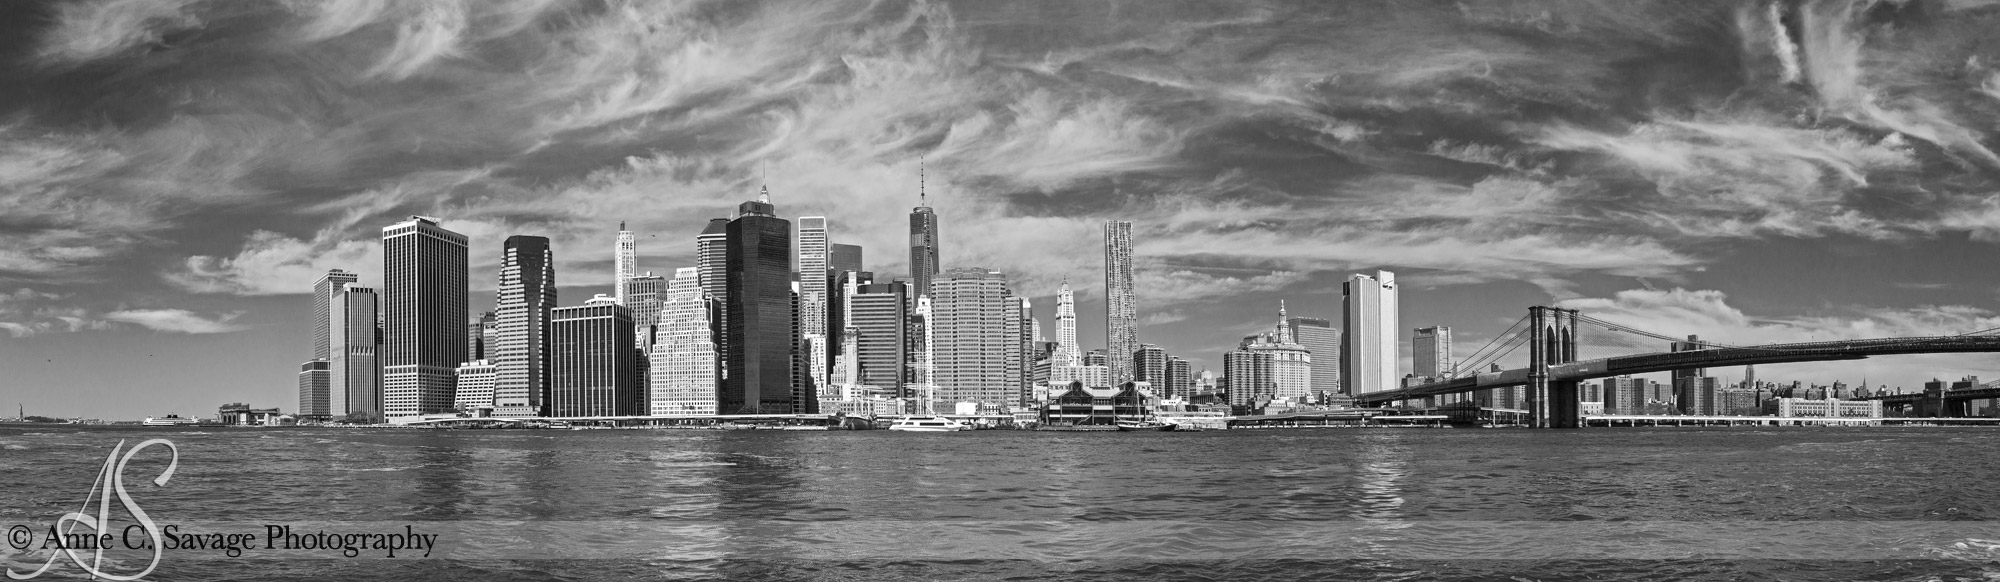 photo essay new york city an unforgettable day an  manhattan